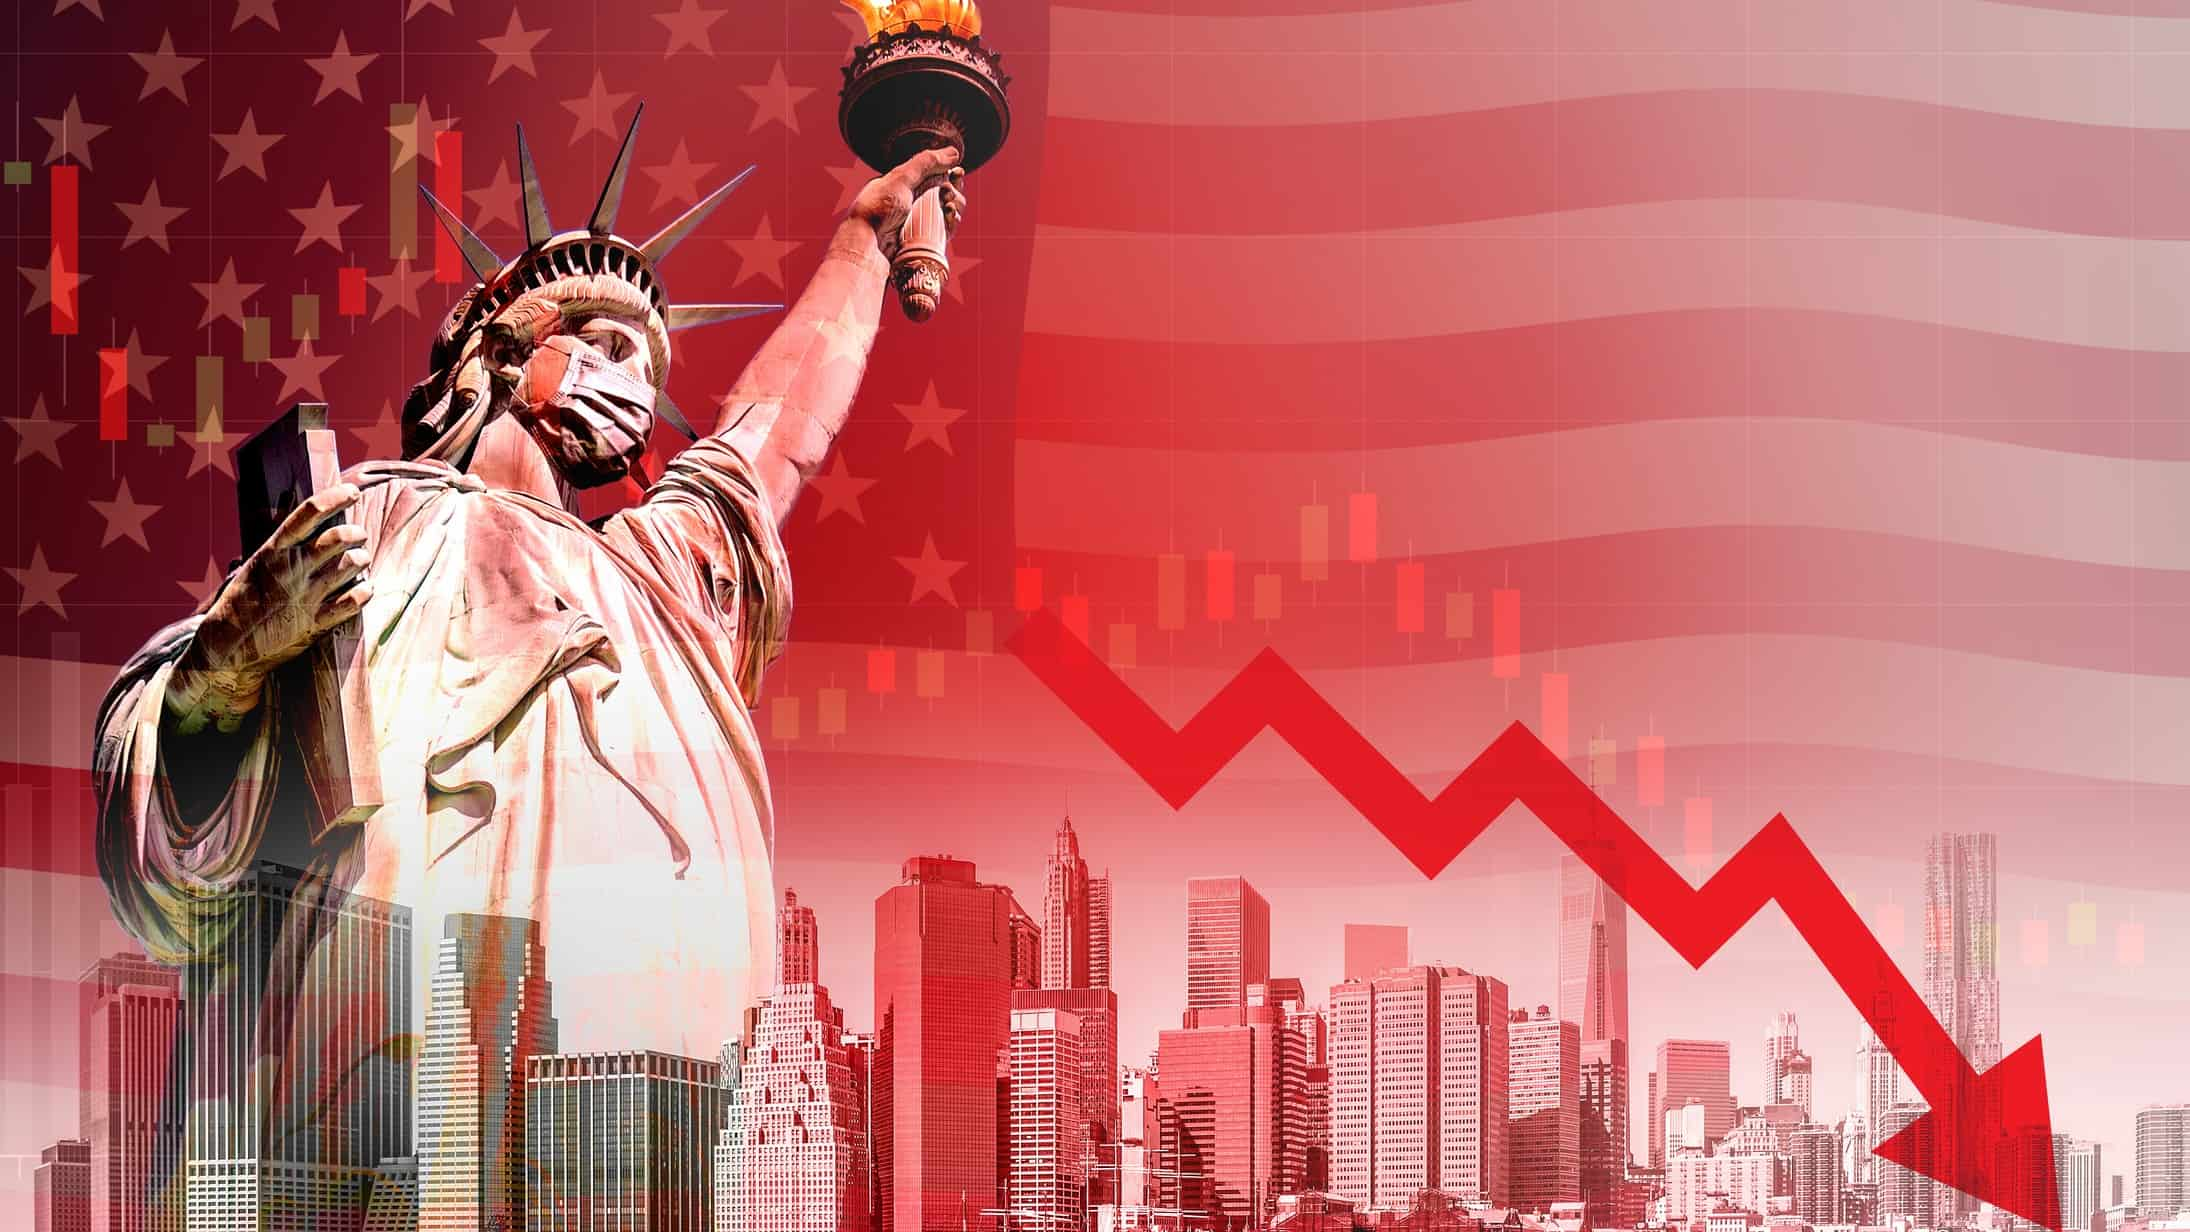 The statue of Liberty against a red chart with an arrow pointing down, indicating economic instability or recession in the US